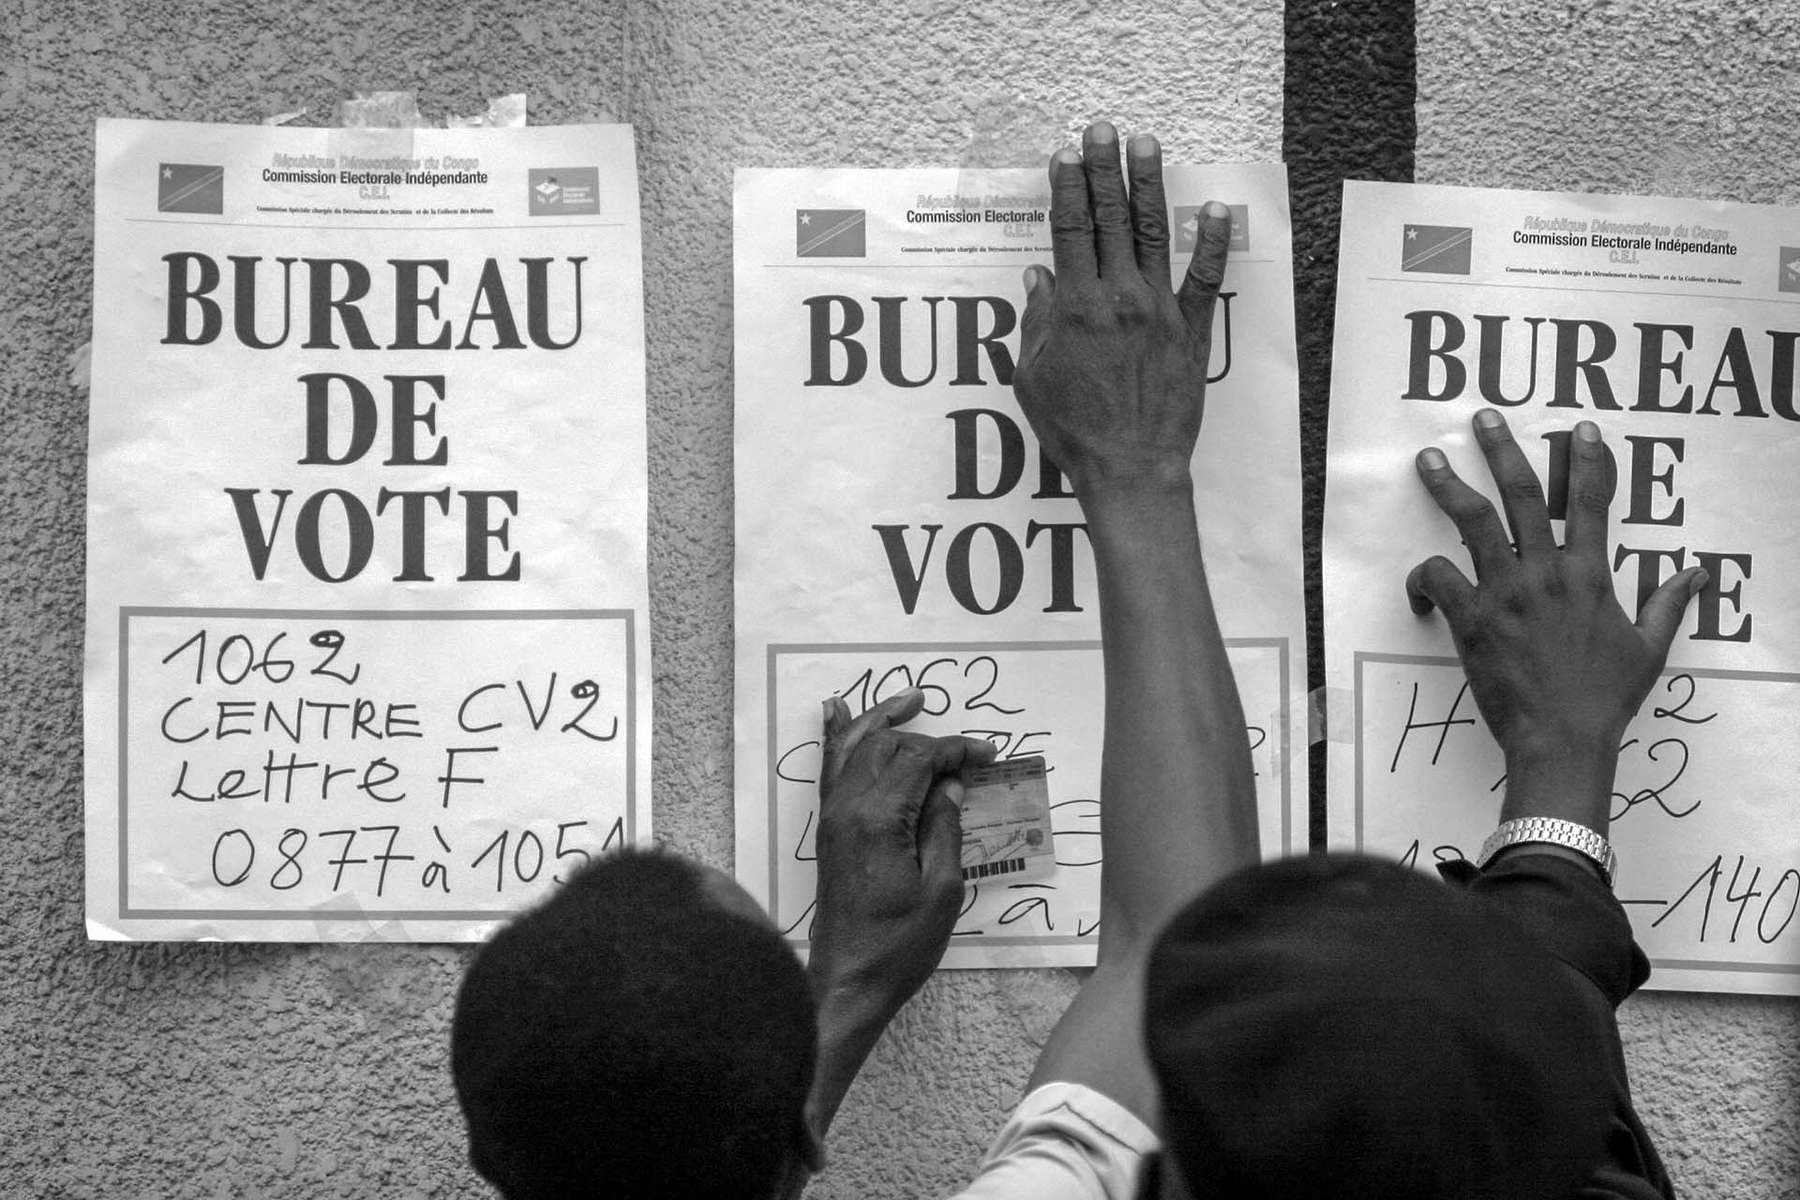 Election workers put up the sings at a polling station before it opens in Kinshasa. Voting took place without major violence as it was feared.